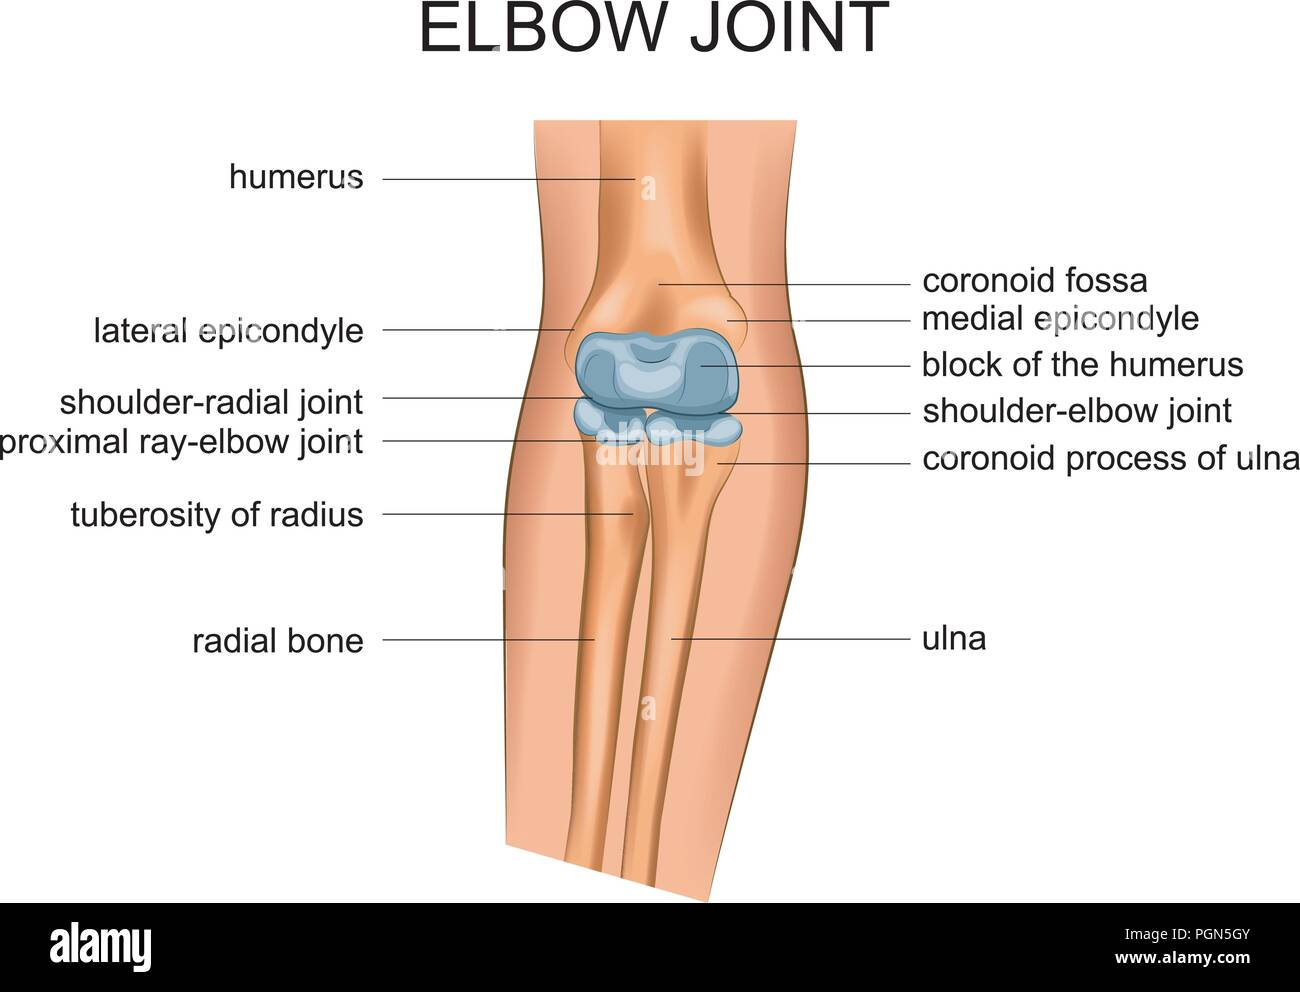 vector illustration of anatomy of the elbow joint - Stock Image